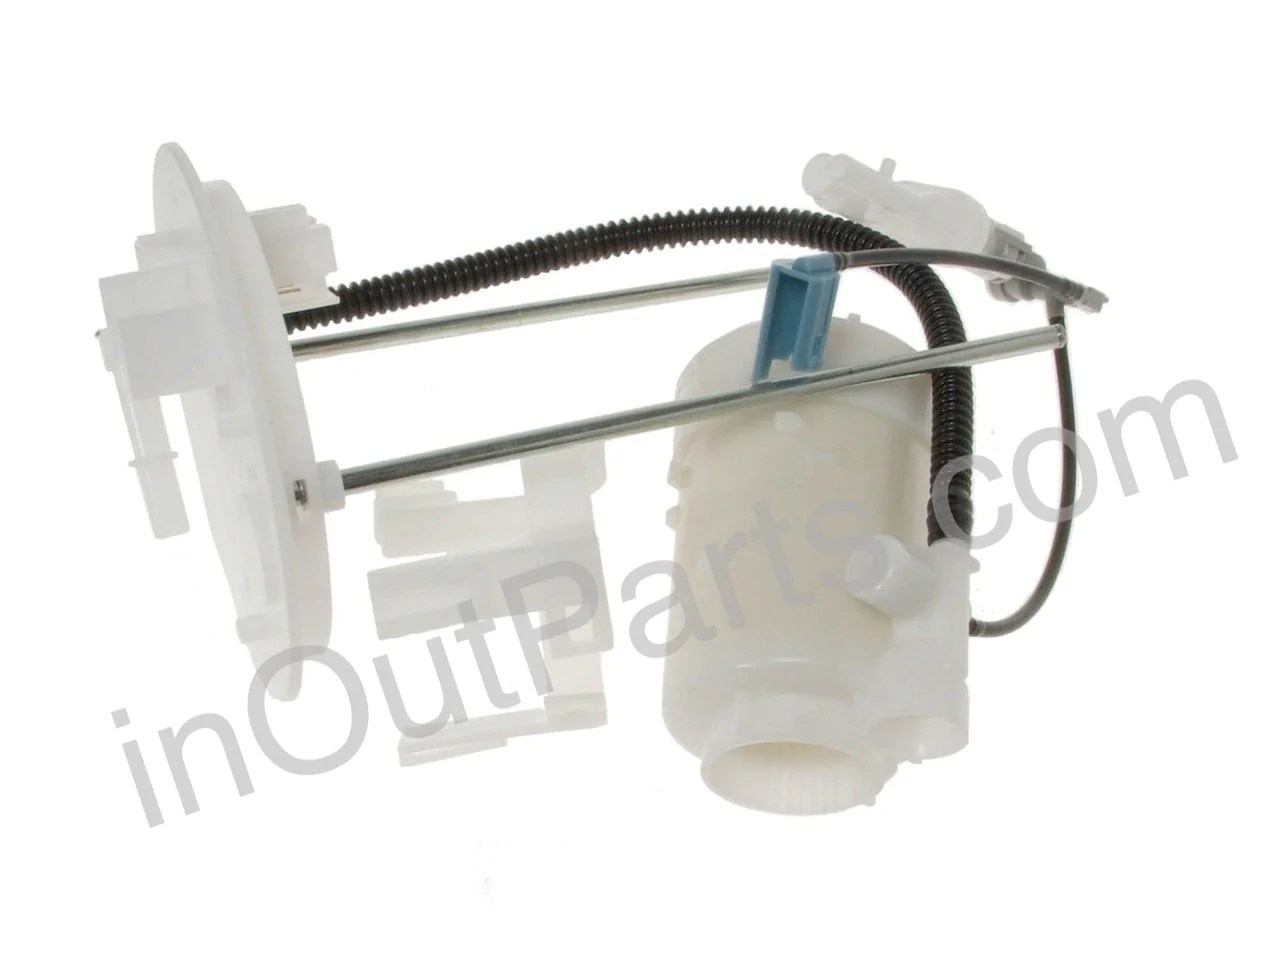 small resolution of fuel filter fits mitsubishi outlander xl 2006 2007 2008 2009 2010 2011 2012 2013 asx